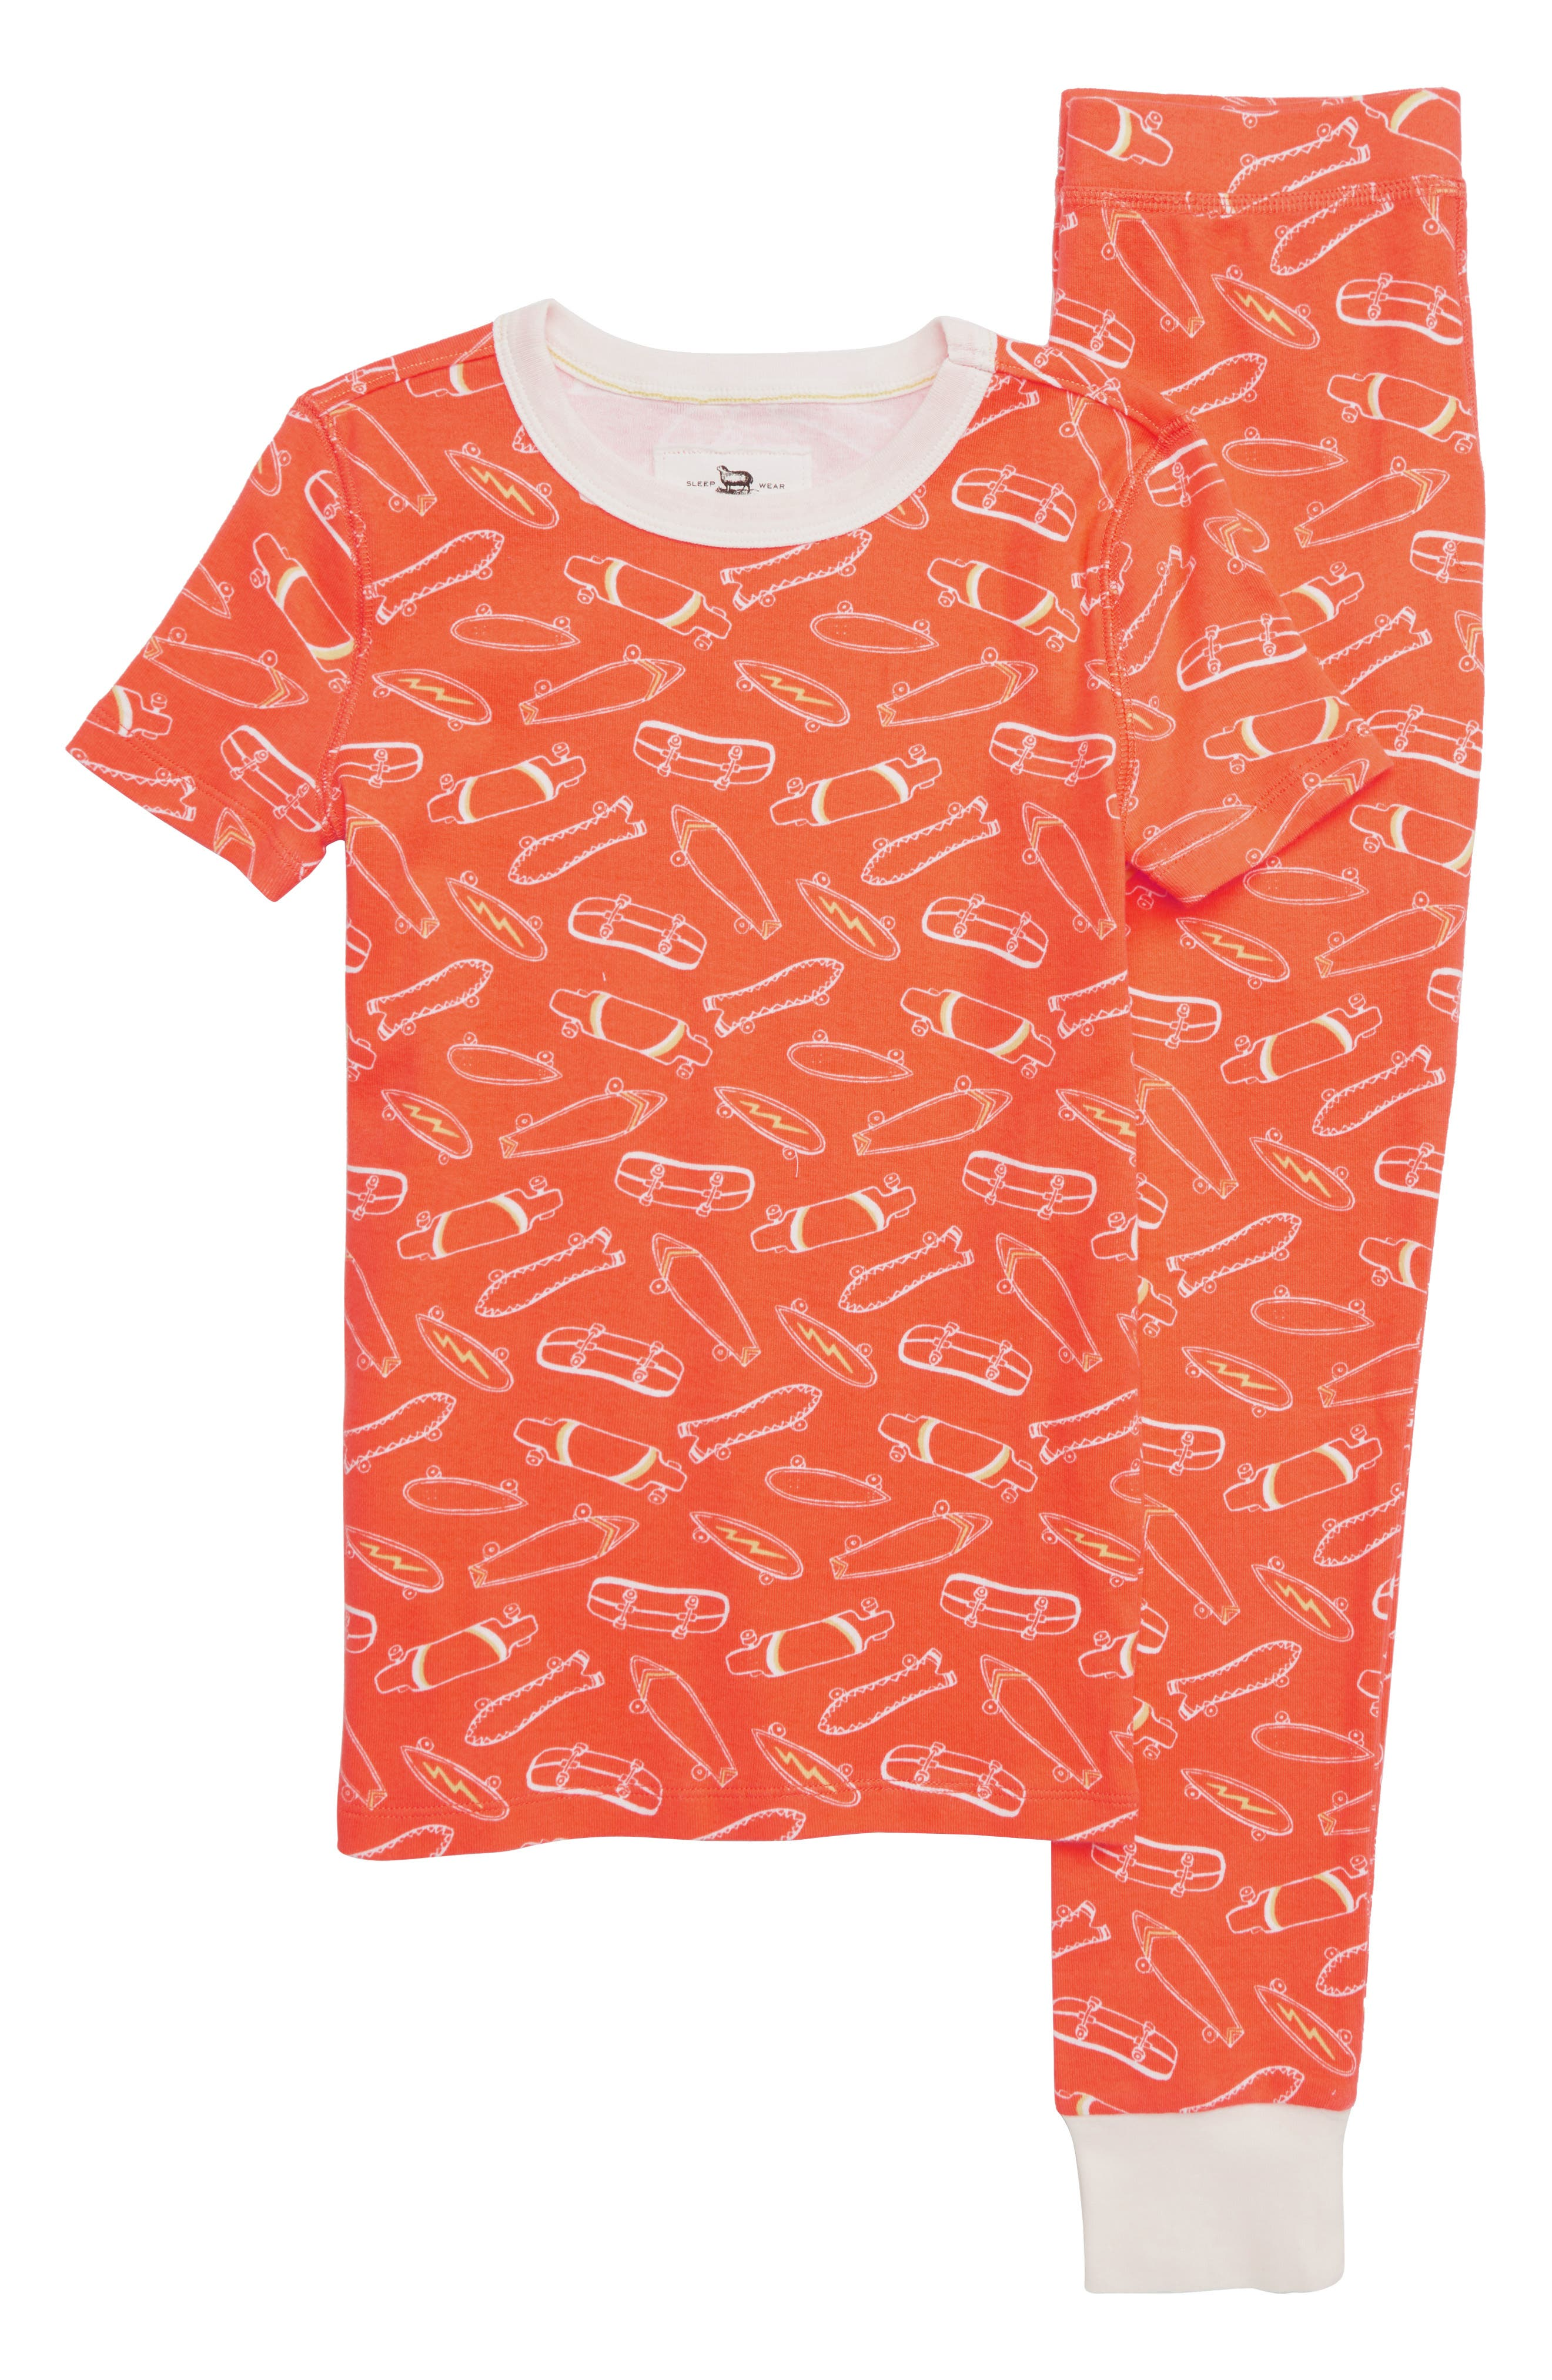 Toddler Boys Crewcuts By Jcrew Skateboards Fitted TwoPiece Pajamas Size 3T  Orange